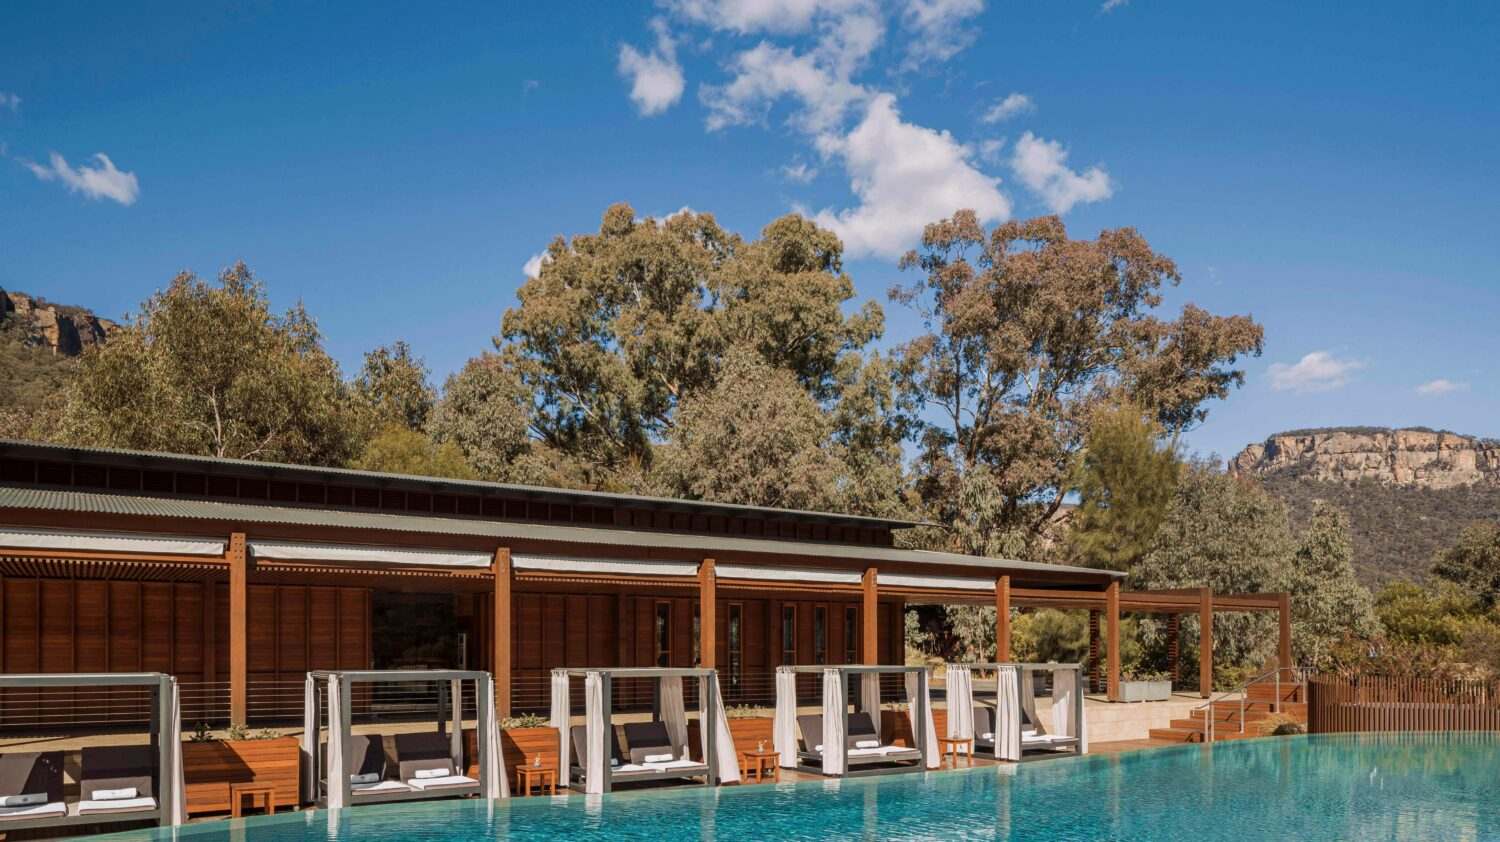 pool cabanas-emirates one&only wolgan valley australia